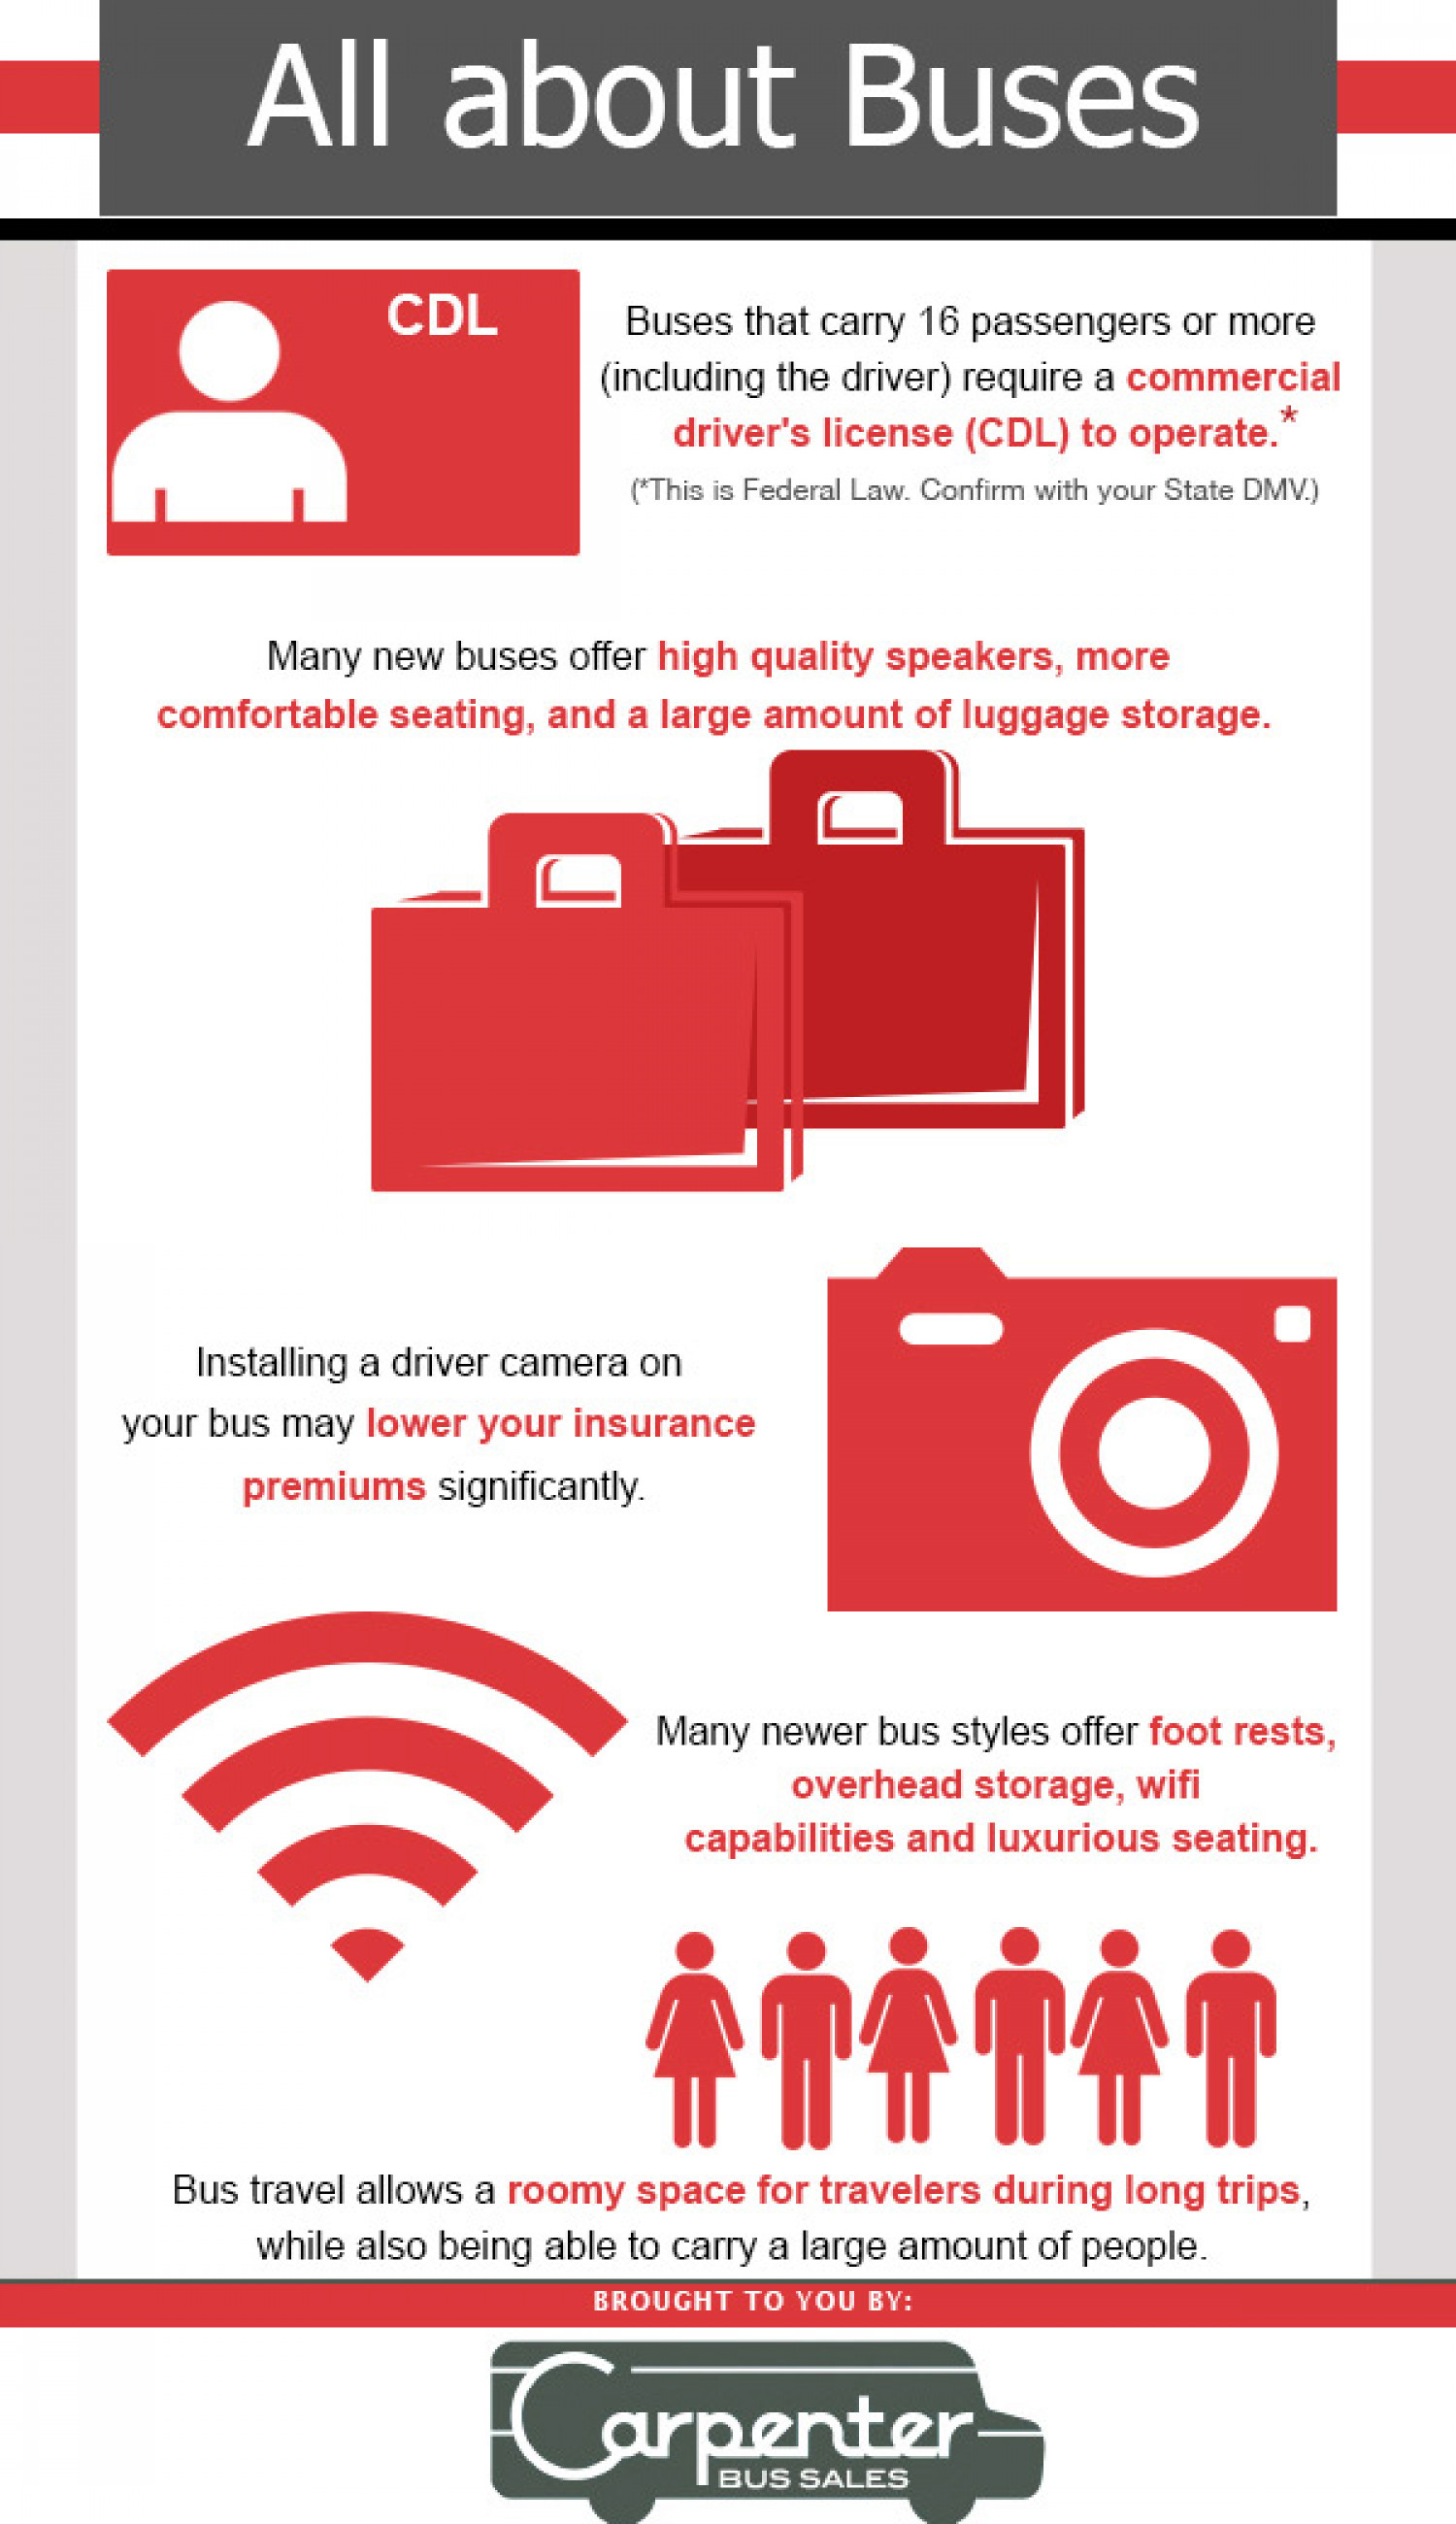 5 Important Facts About Buses Infographic